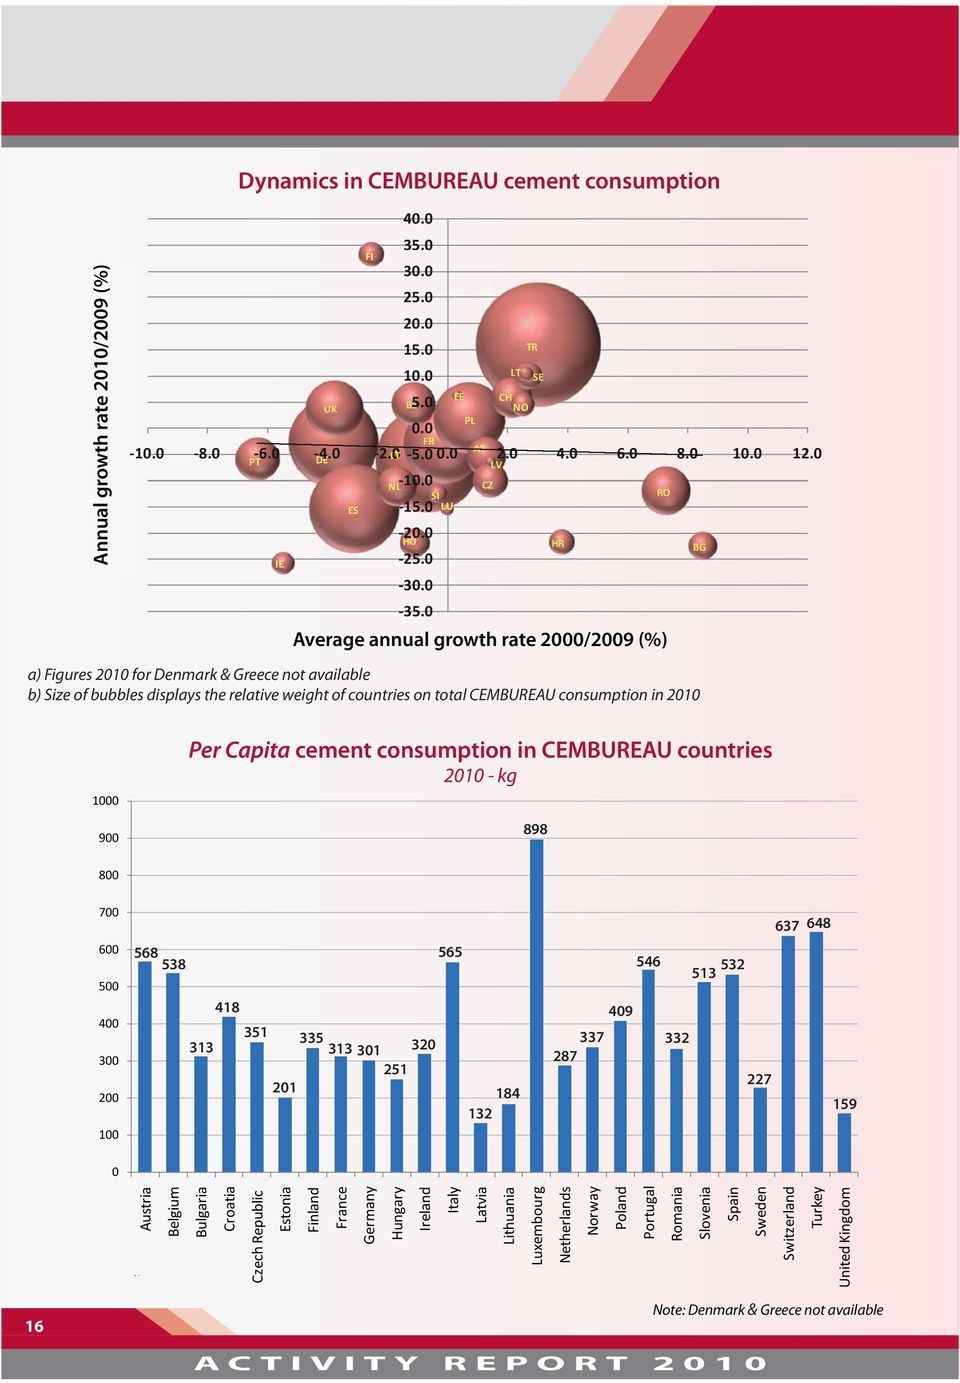 0 000 Average annual growth rate 2000/2009 (%) a) Figures 2010 for Denmark & Greece not available b) Size of bubbles displays the relative weight of countries on total CEMBUREAU consumption in 2010